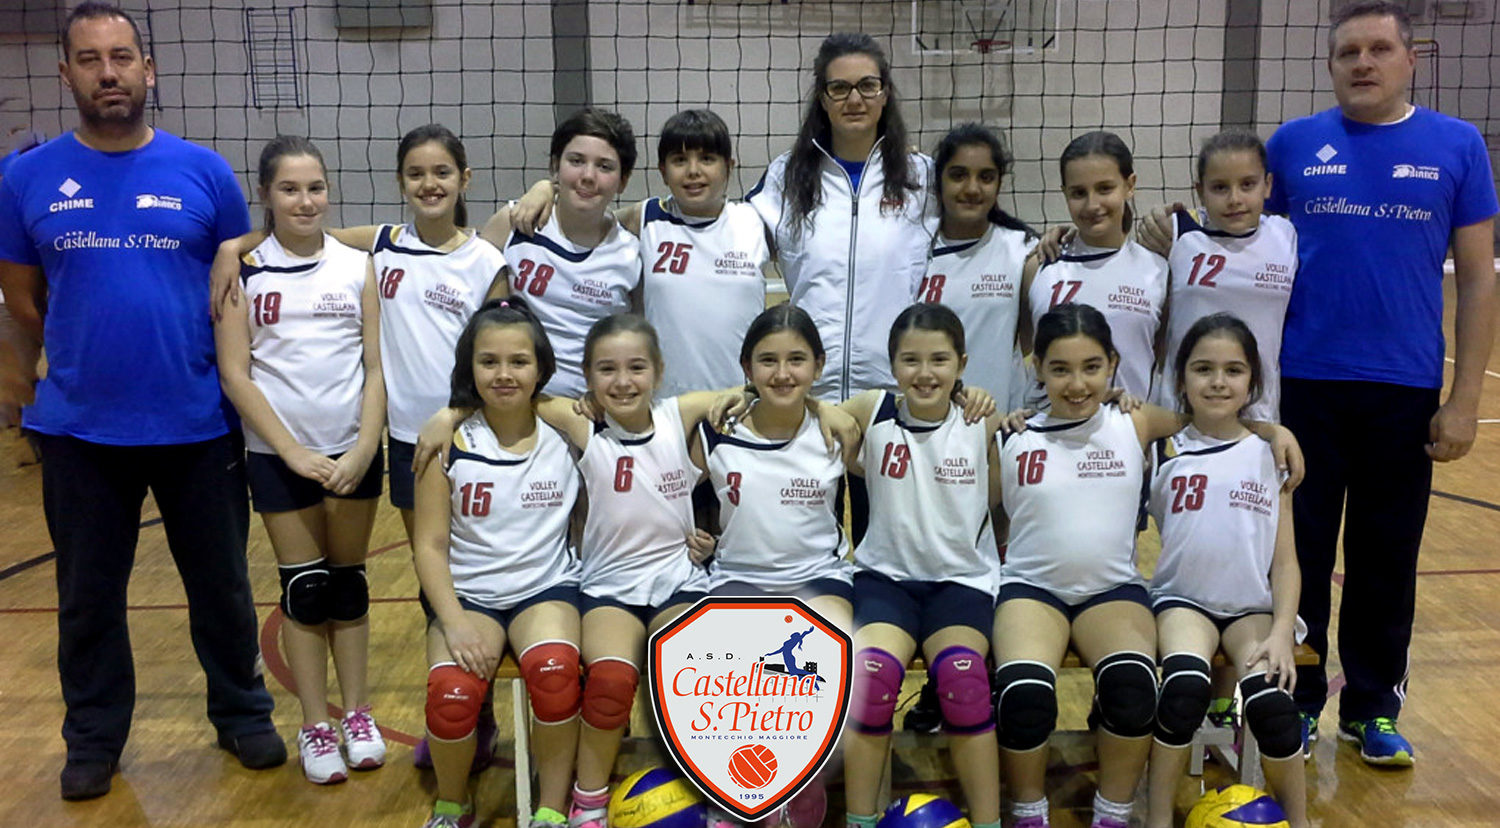 Volley Castellana S.Pietro - Under 12 Silver Femminile